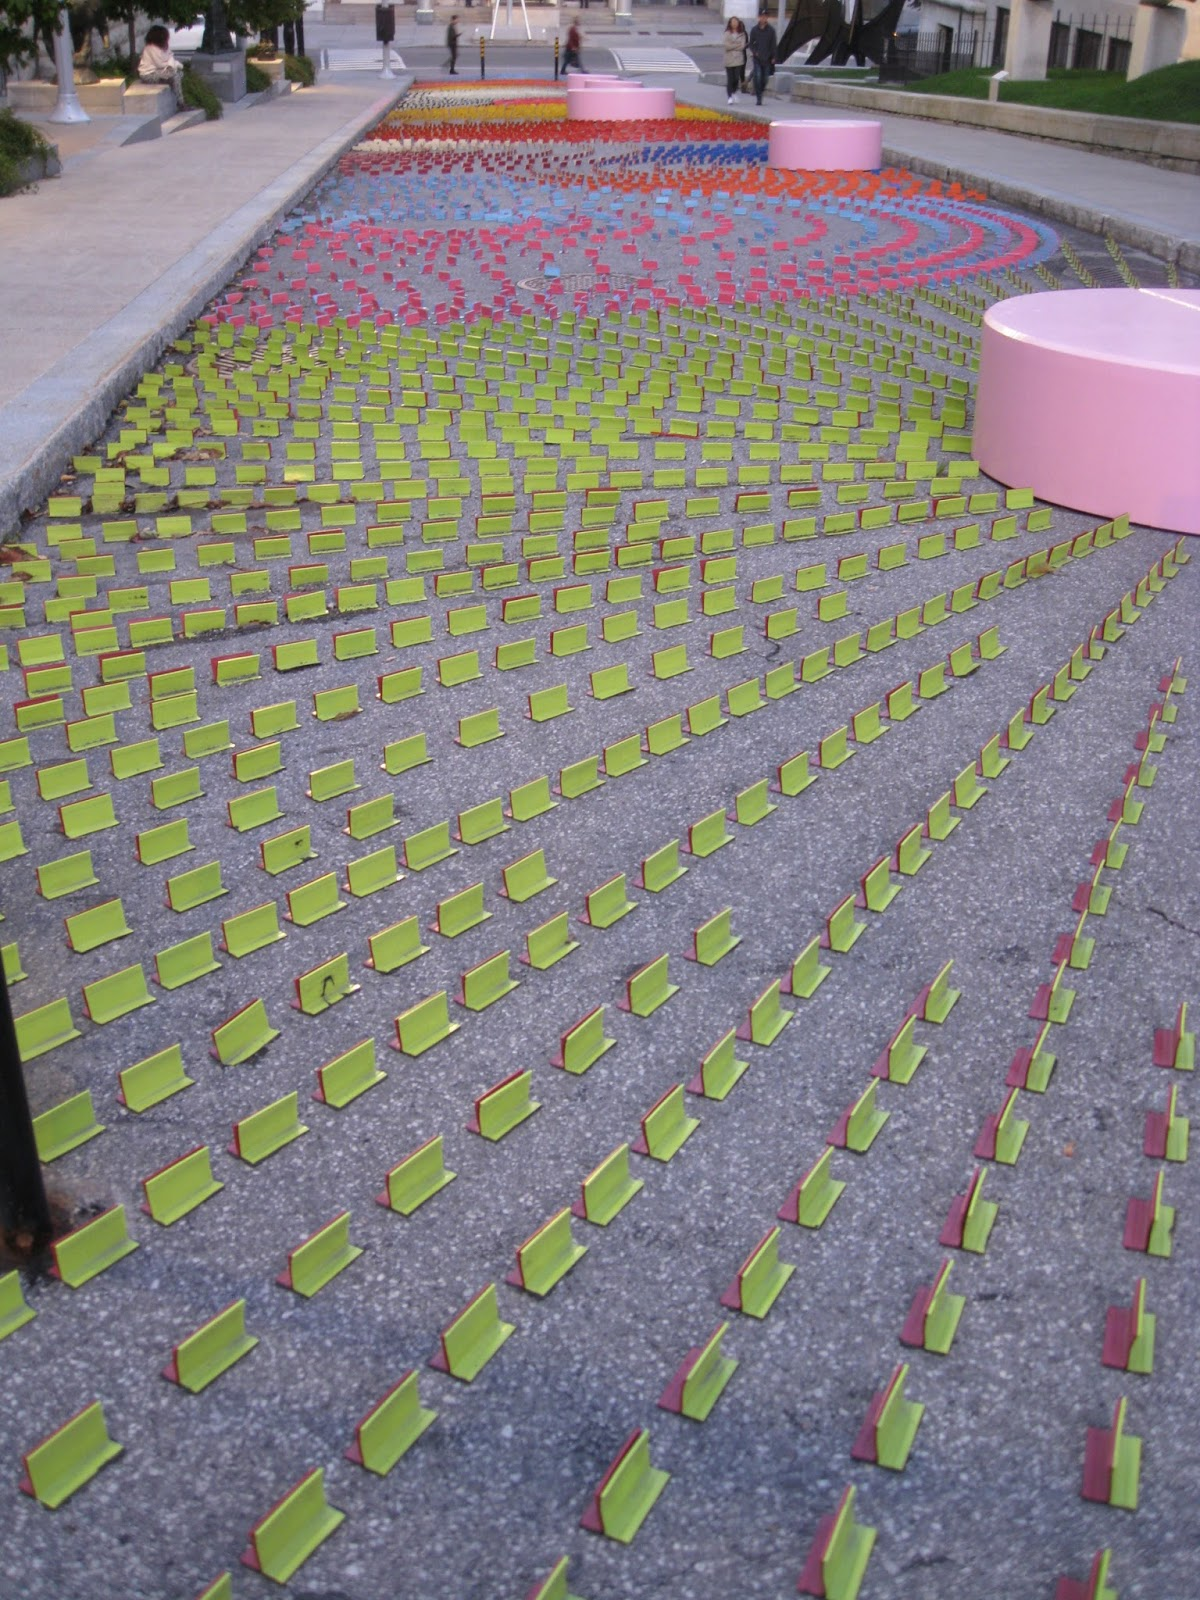 Art frame september 2017 this work consists of 15000 temporary overlay markers tom that are regularly used in road pavement work zones izmirmasajfo